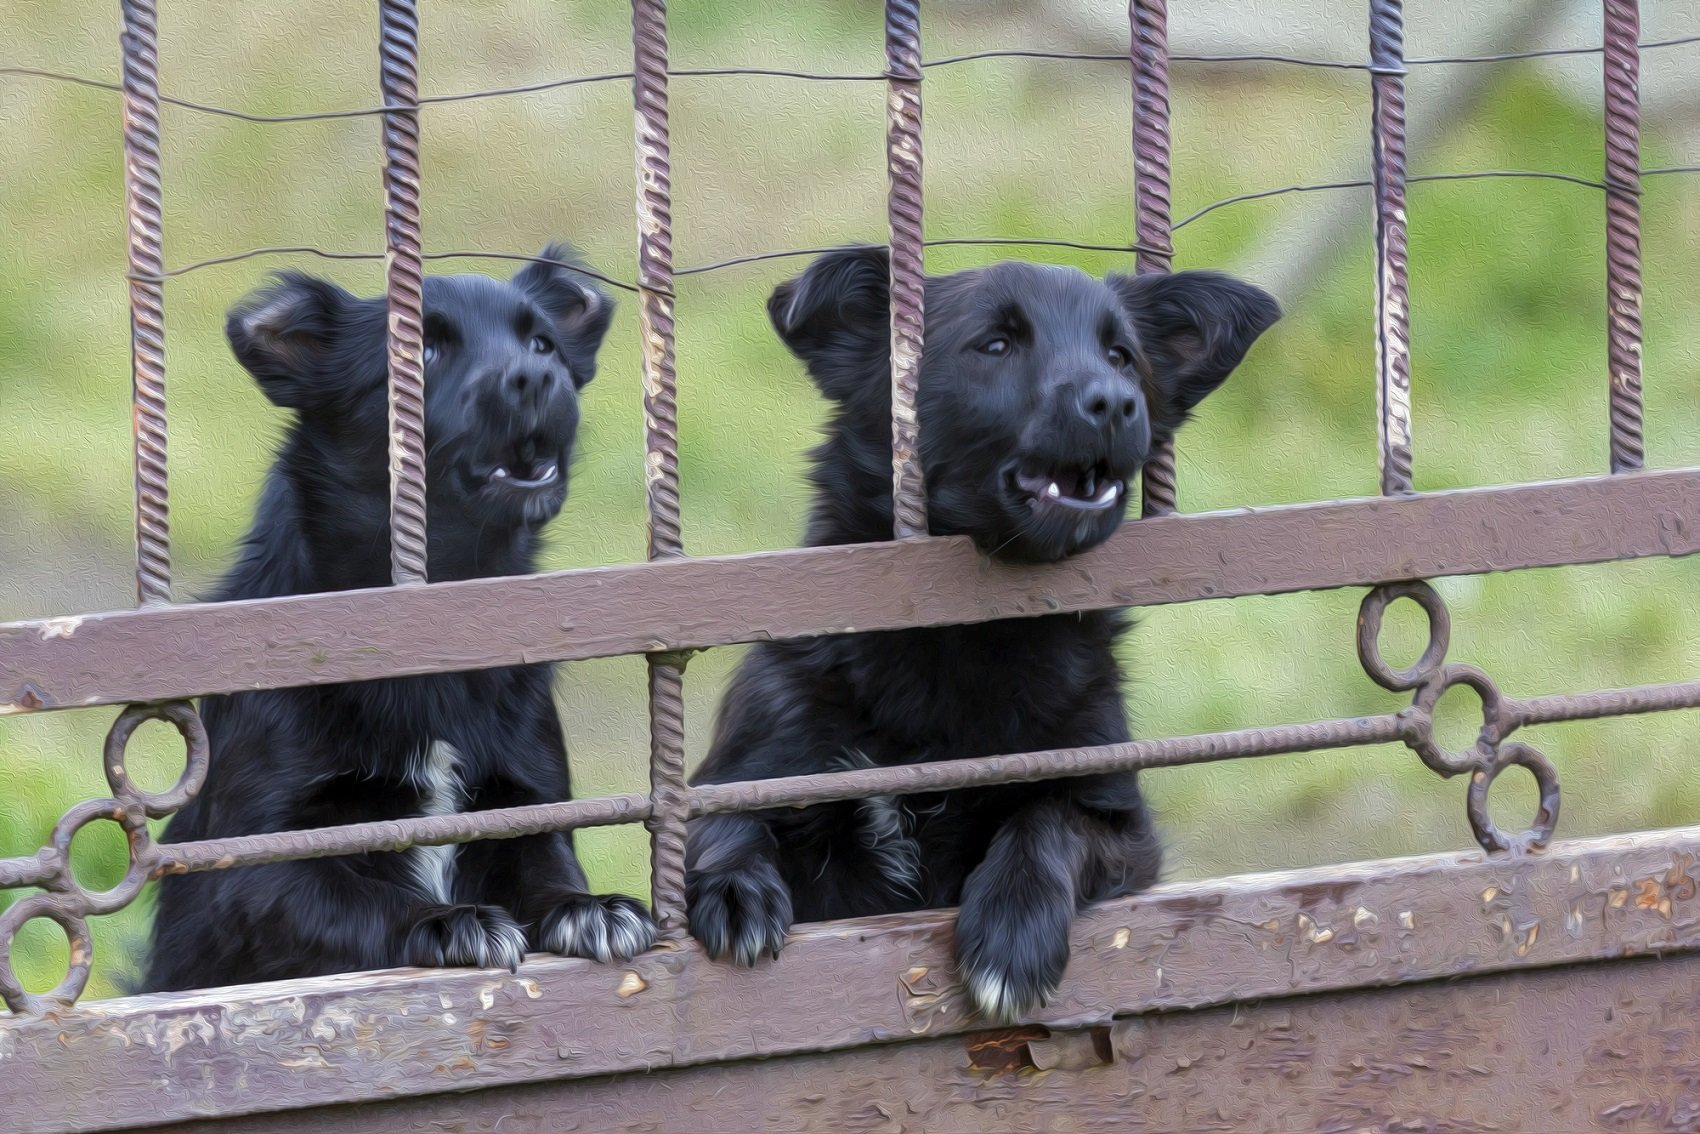 Two black young dogs barking fiercely behind bars of metal gate